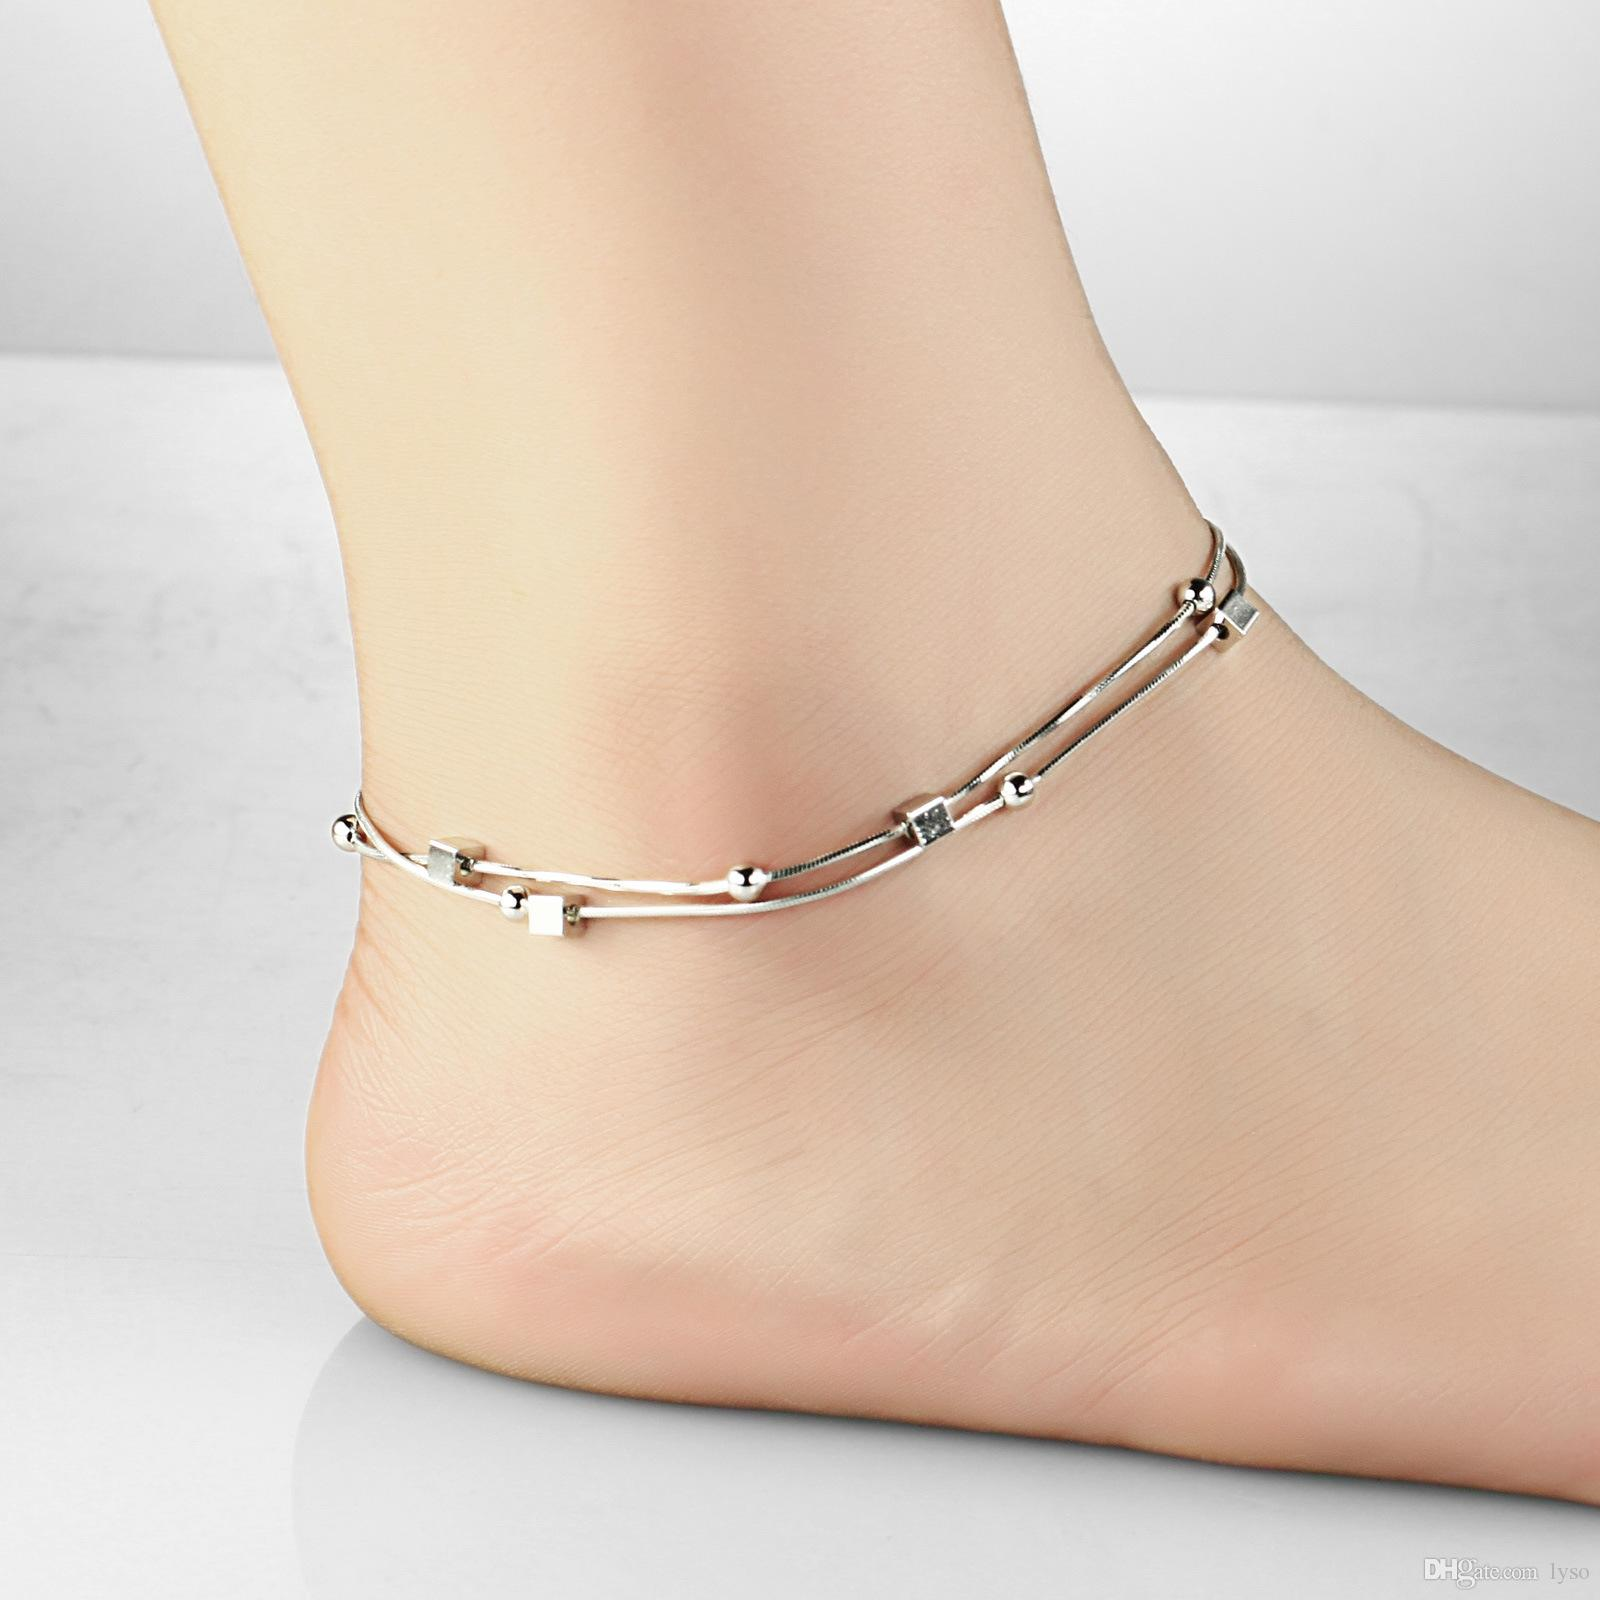 products anklets share bohemian ocean dreams boho shop anklet hippie dreamer dixi